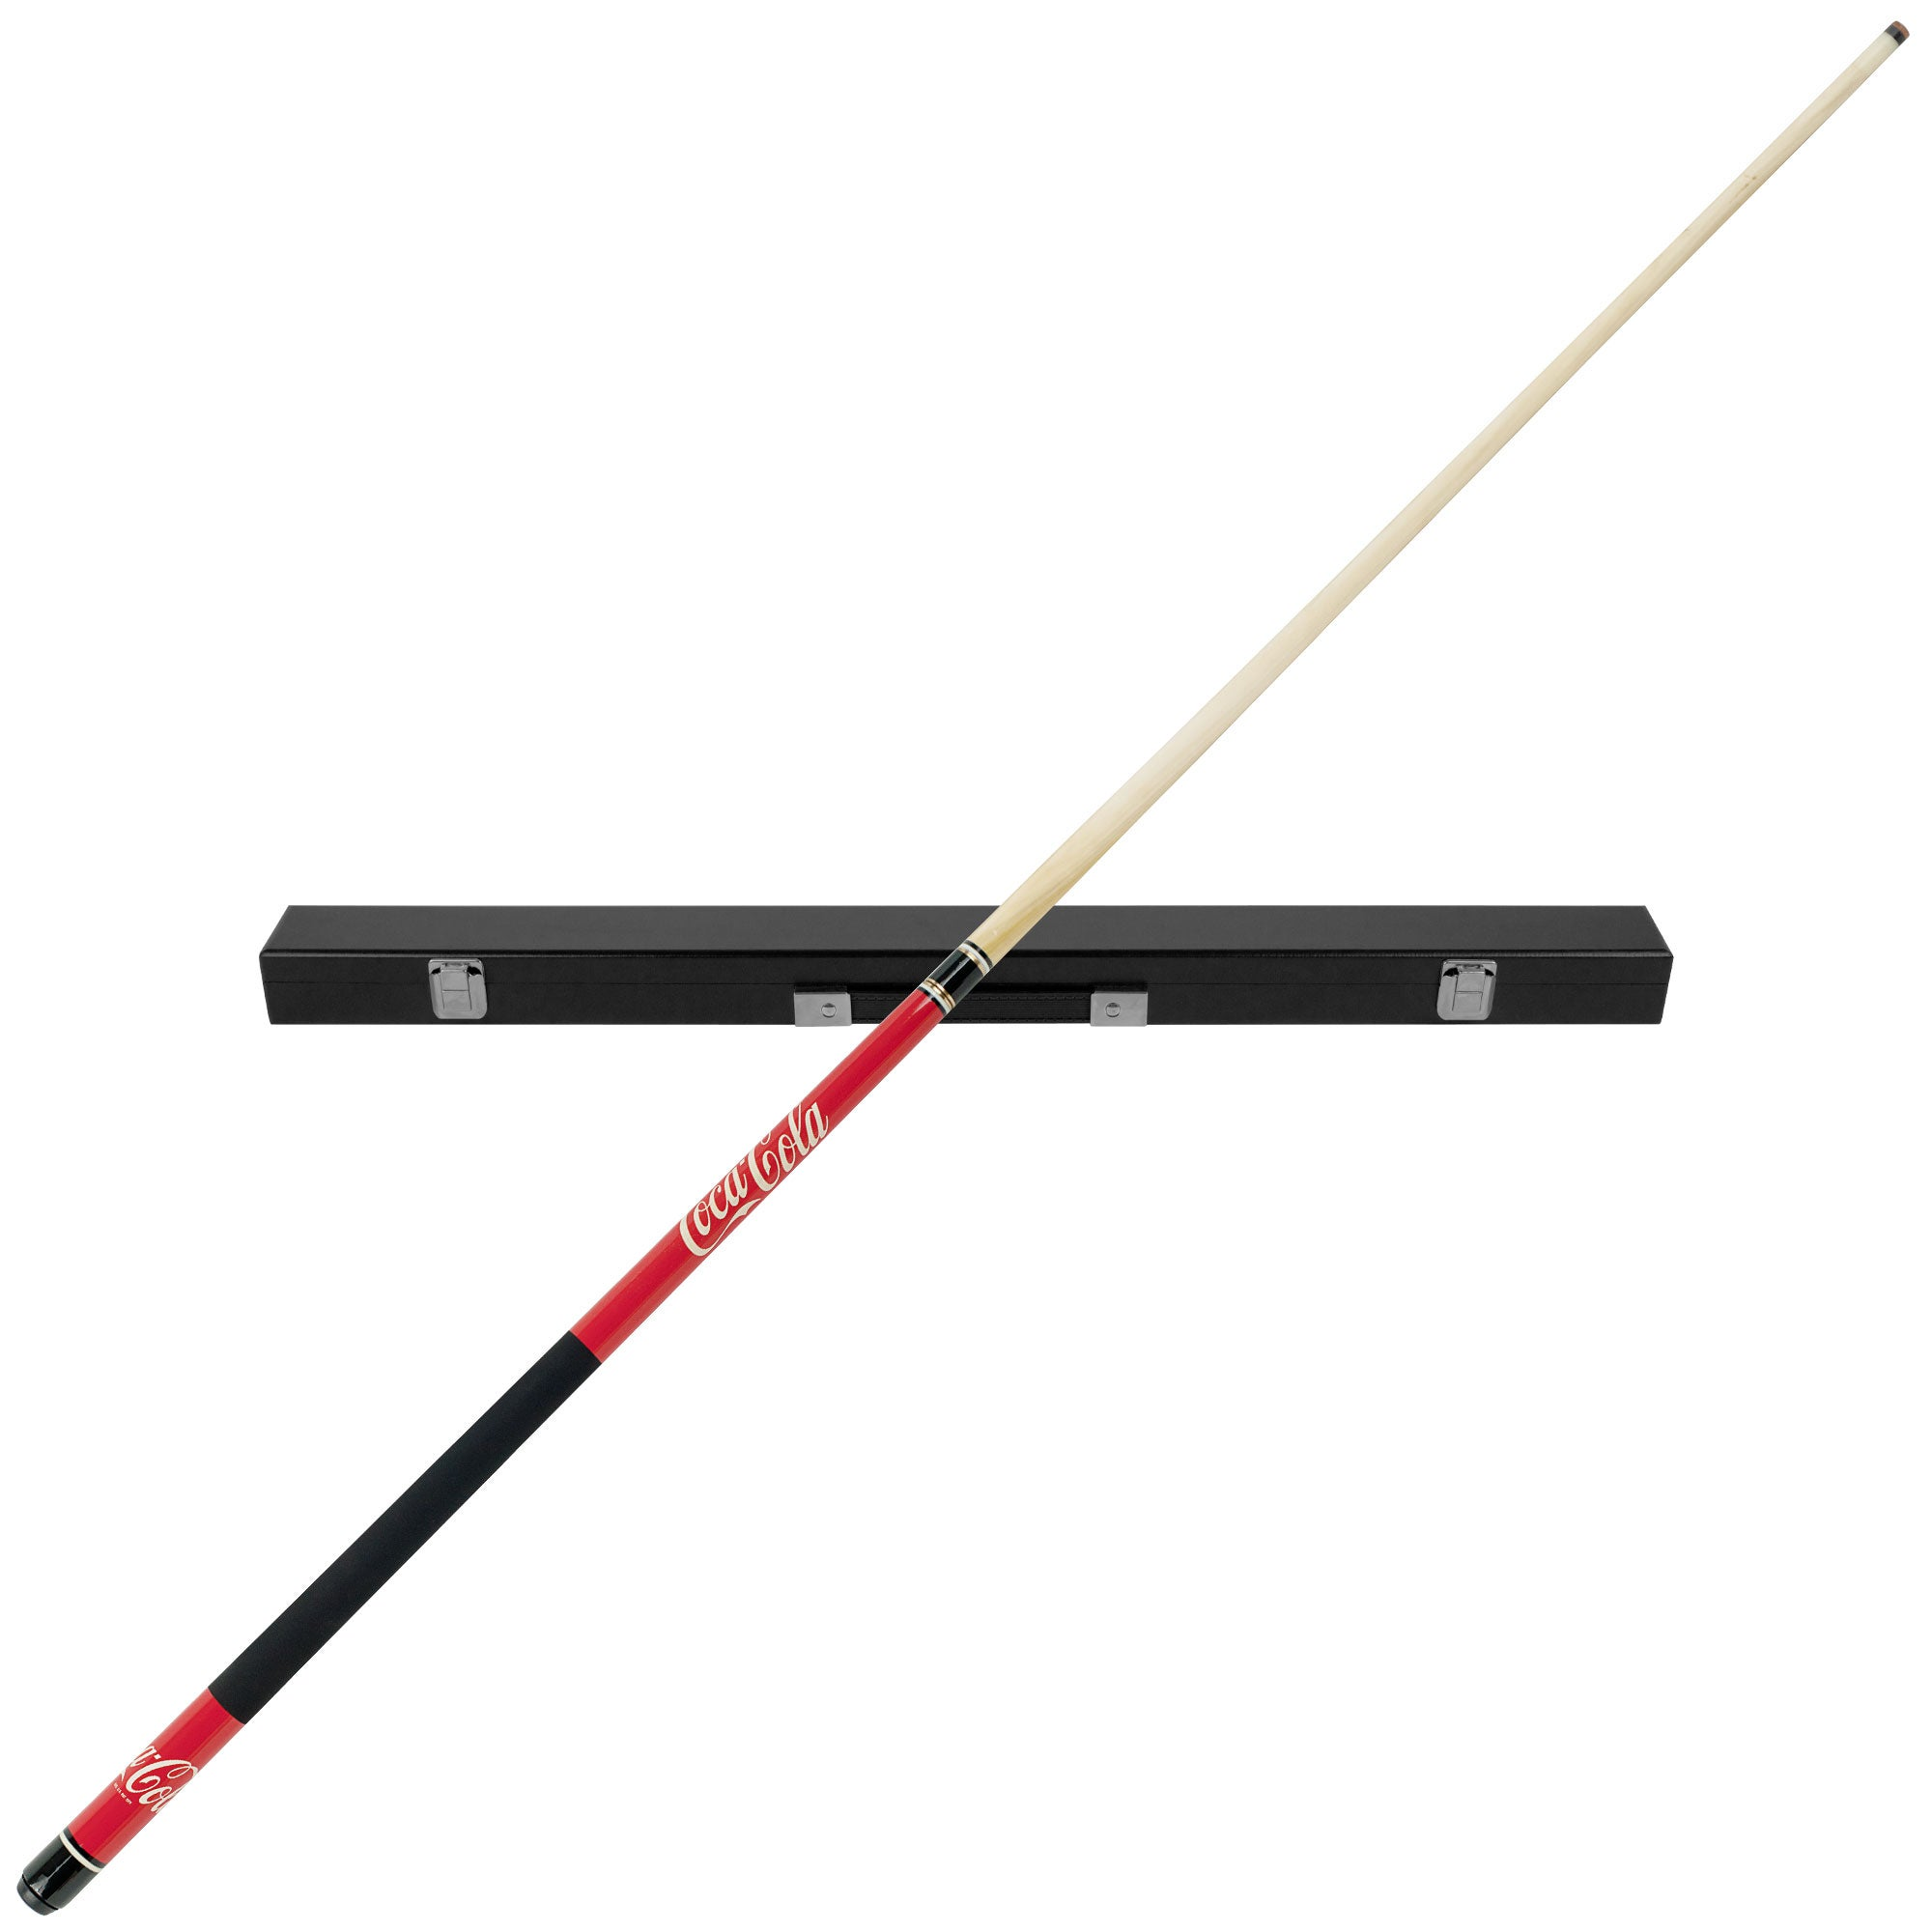 Coca-Cola Billiard Wood Pool Cue Stick with Black Hard Case